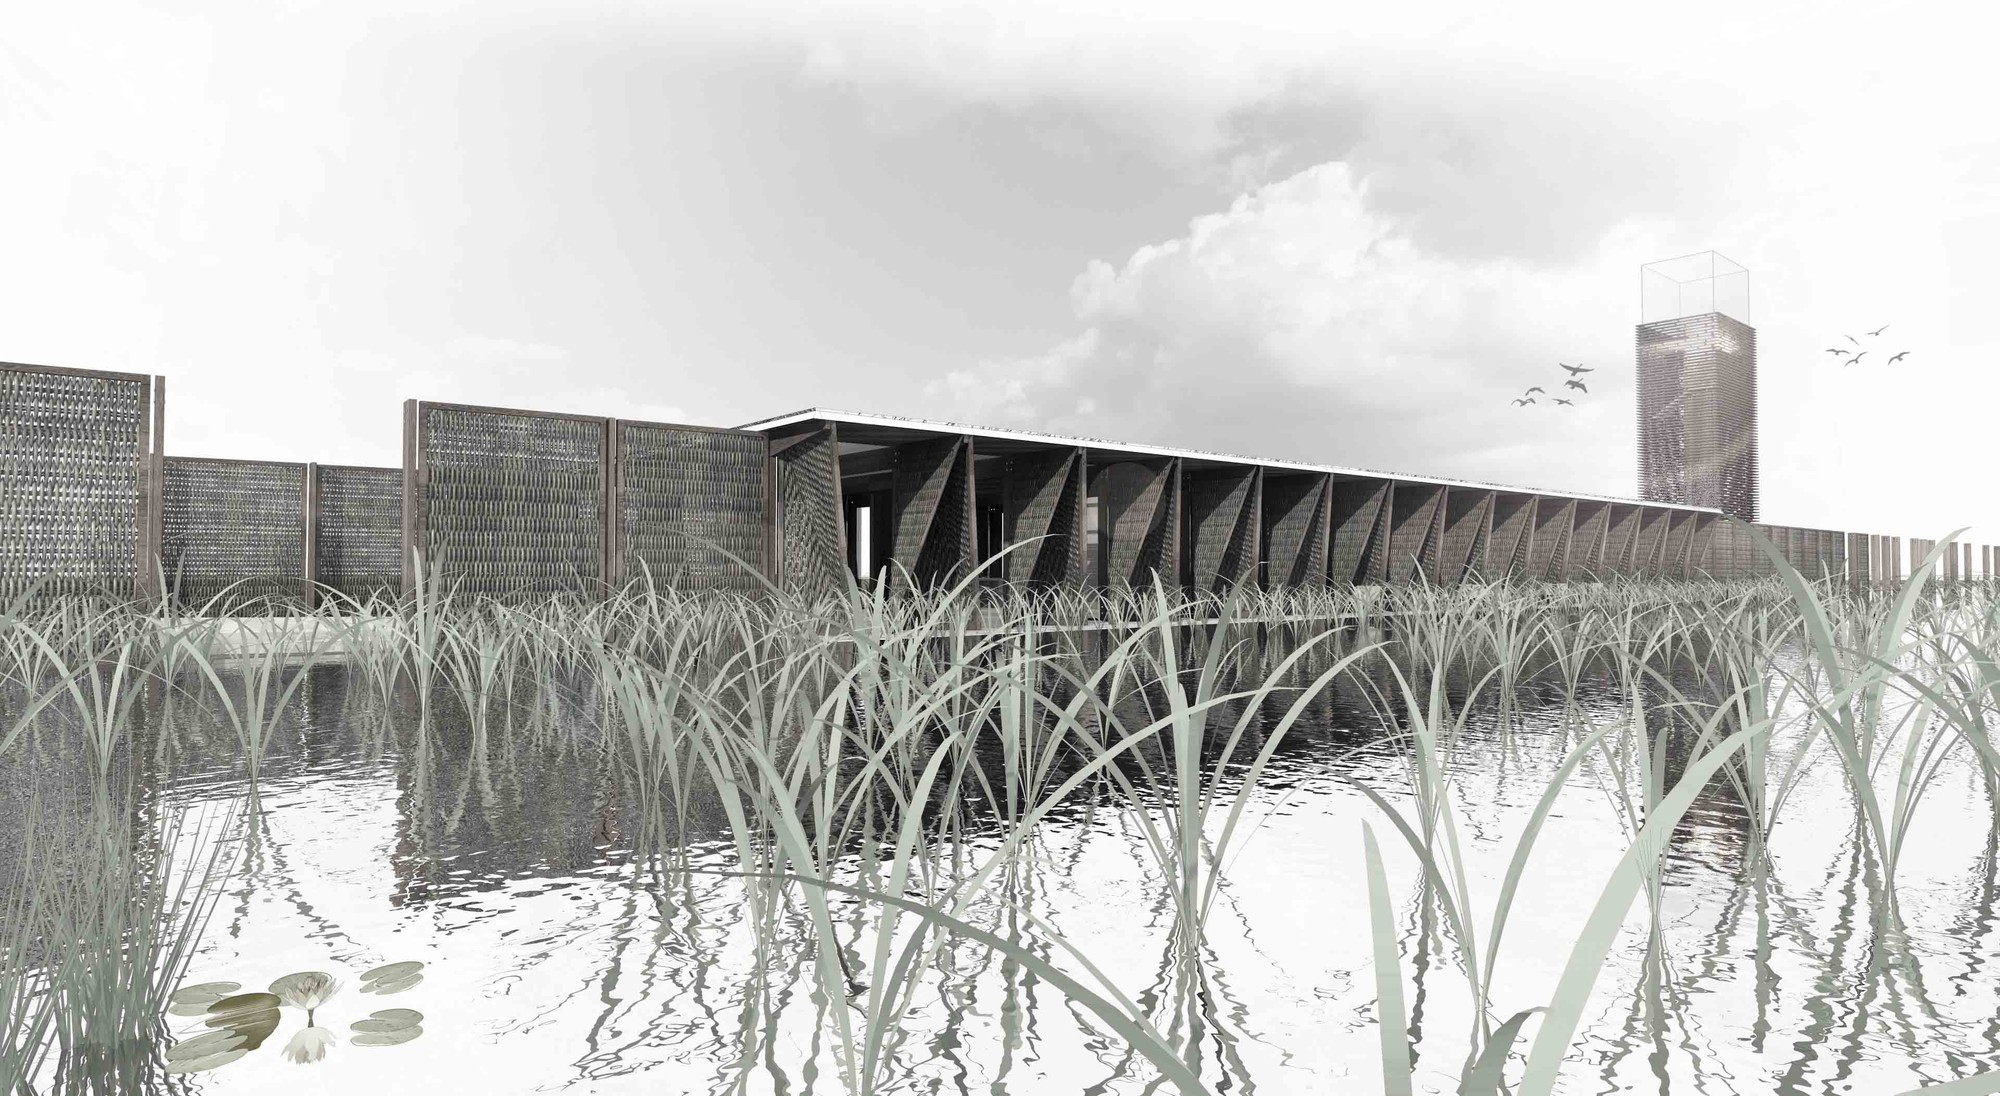 'The Fenland Beacon': Great Fen Visitor Center Competition Entry / Nicholas Hare Architects, Courtesy of Nicholas Hare Architects